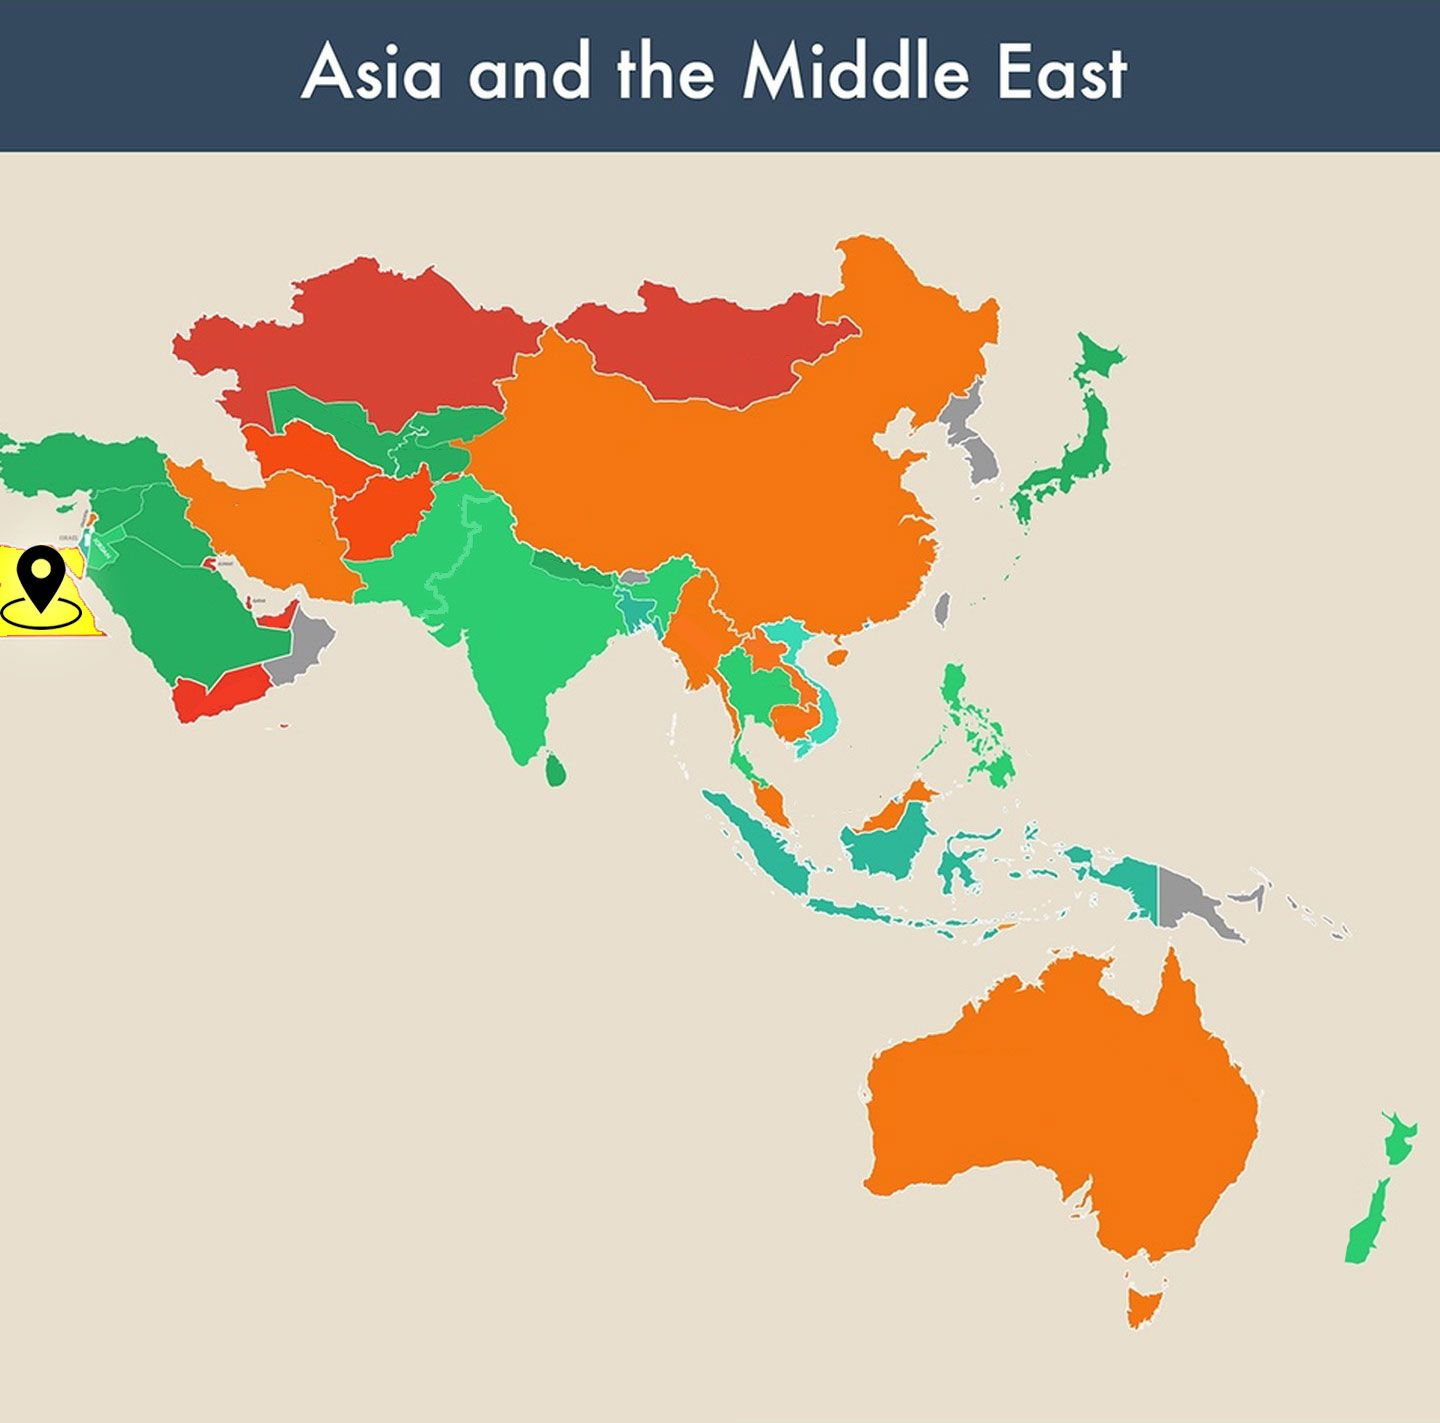 countries of the world empty map - egypt image